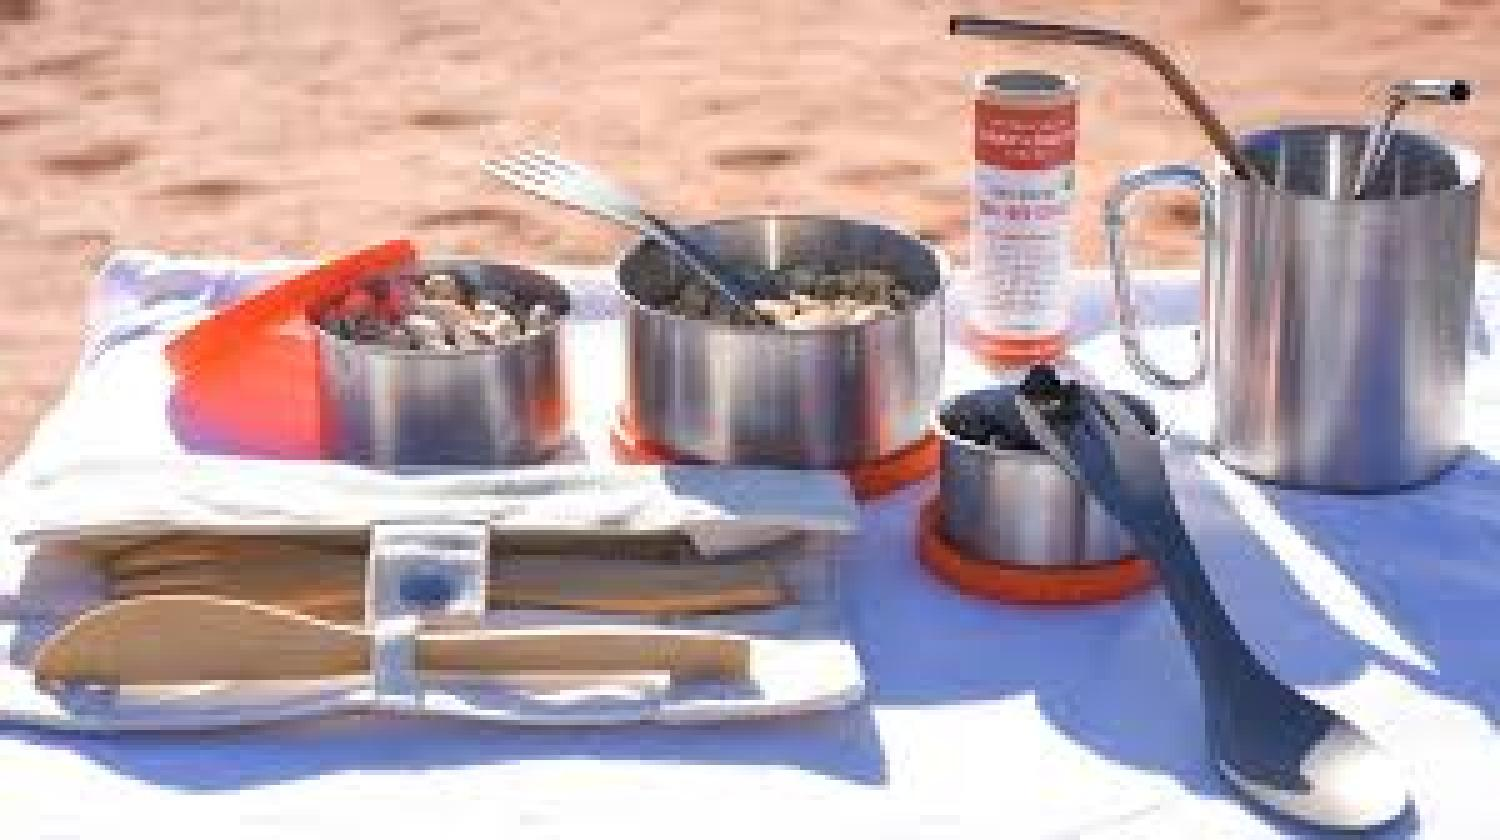 Reusable utensils and food storage items